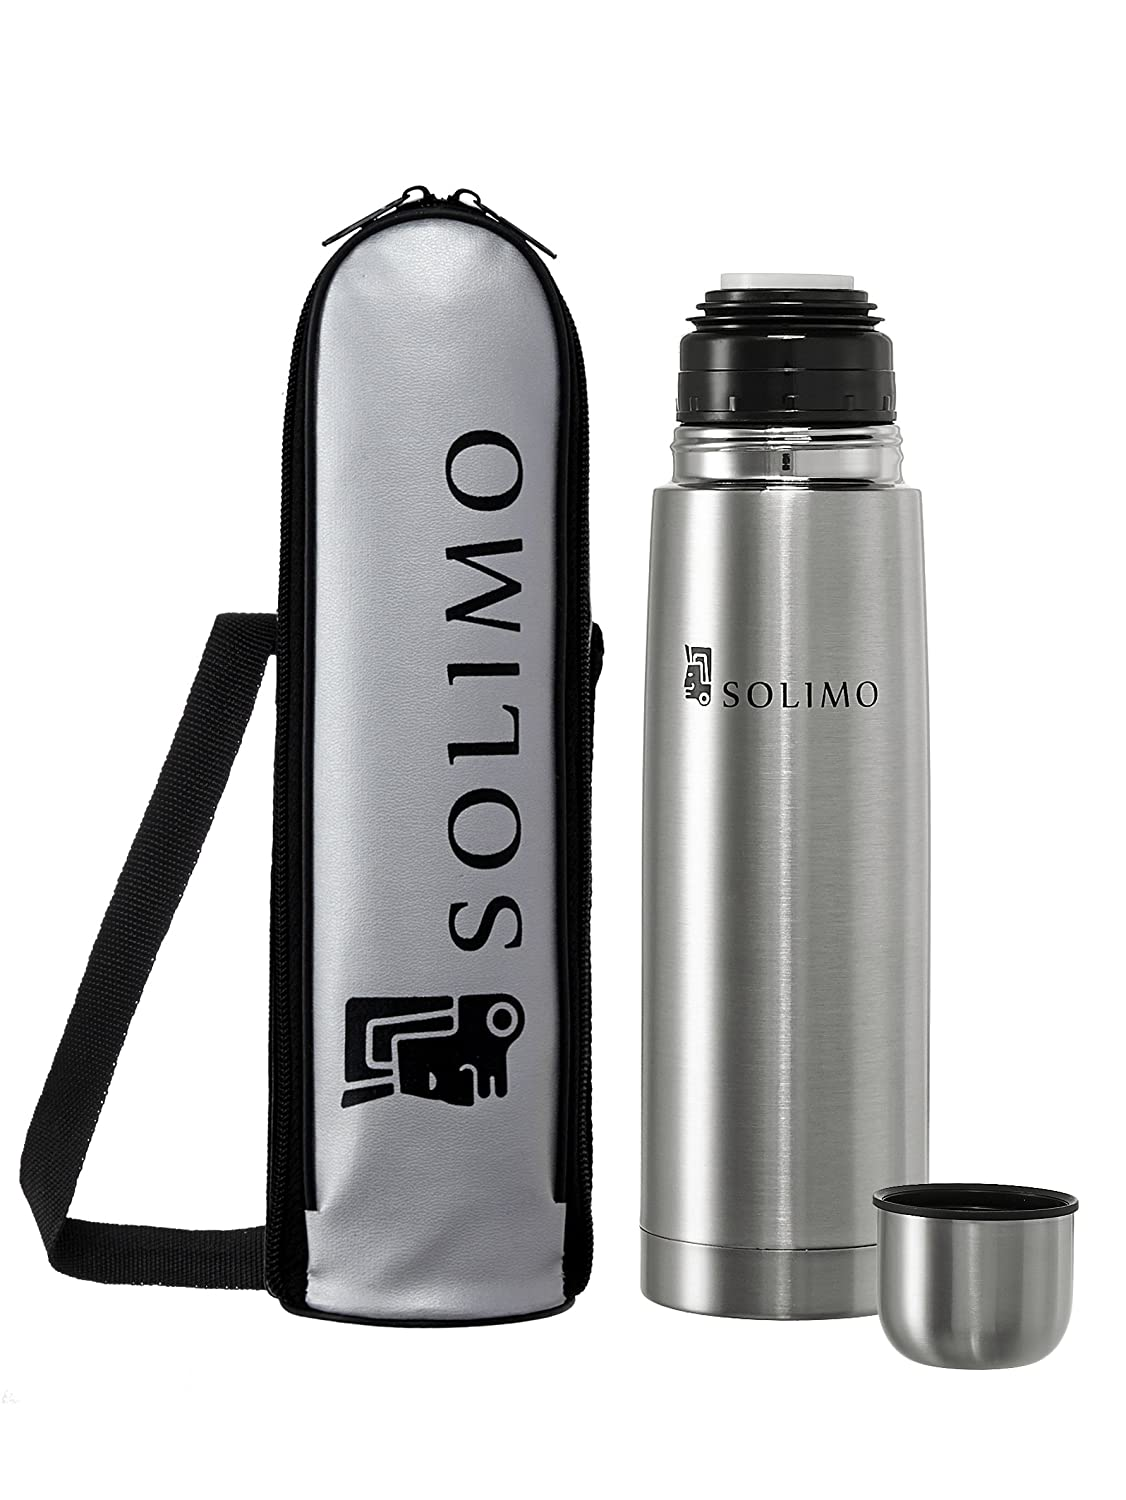 Upto 40% Off On Solimo Home Products By Amazon | Solimo Thermosteel Flask, 500ml, Silver @ Rs.449